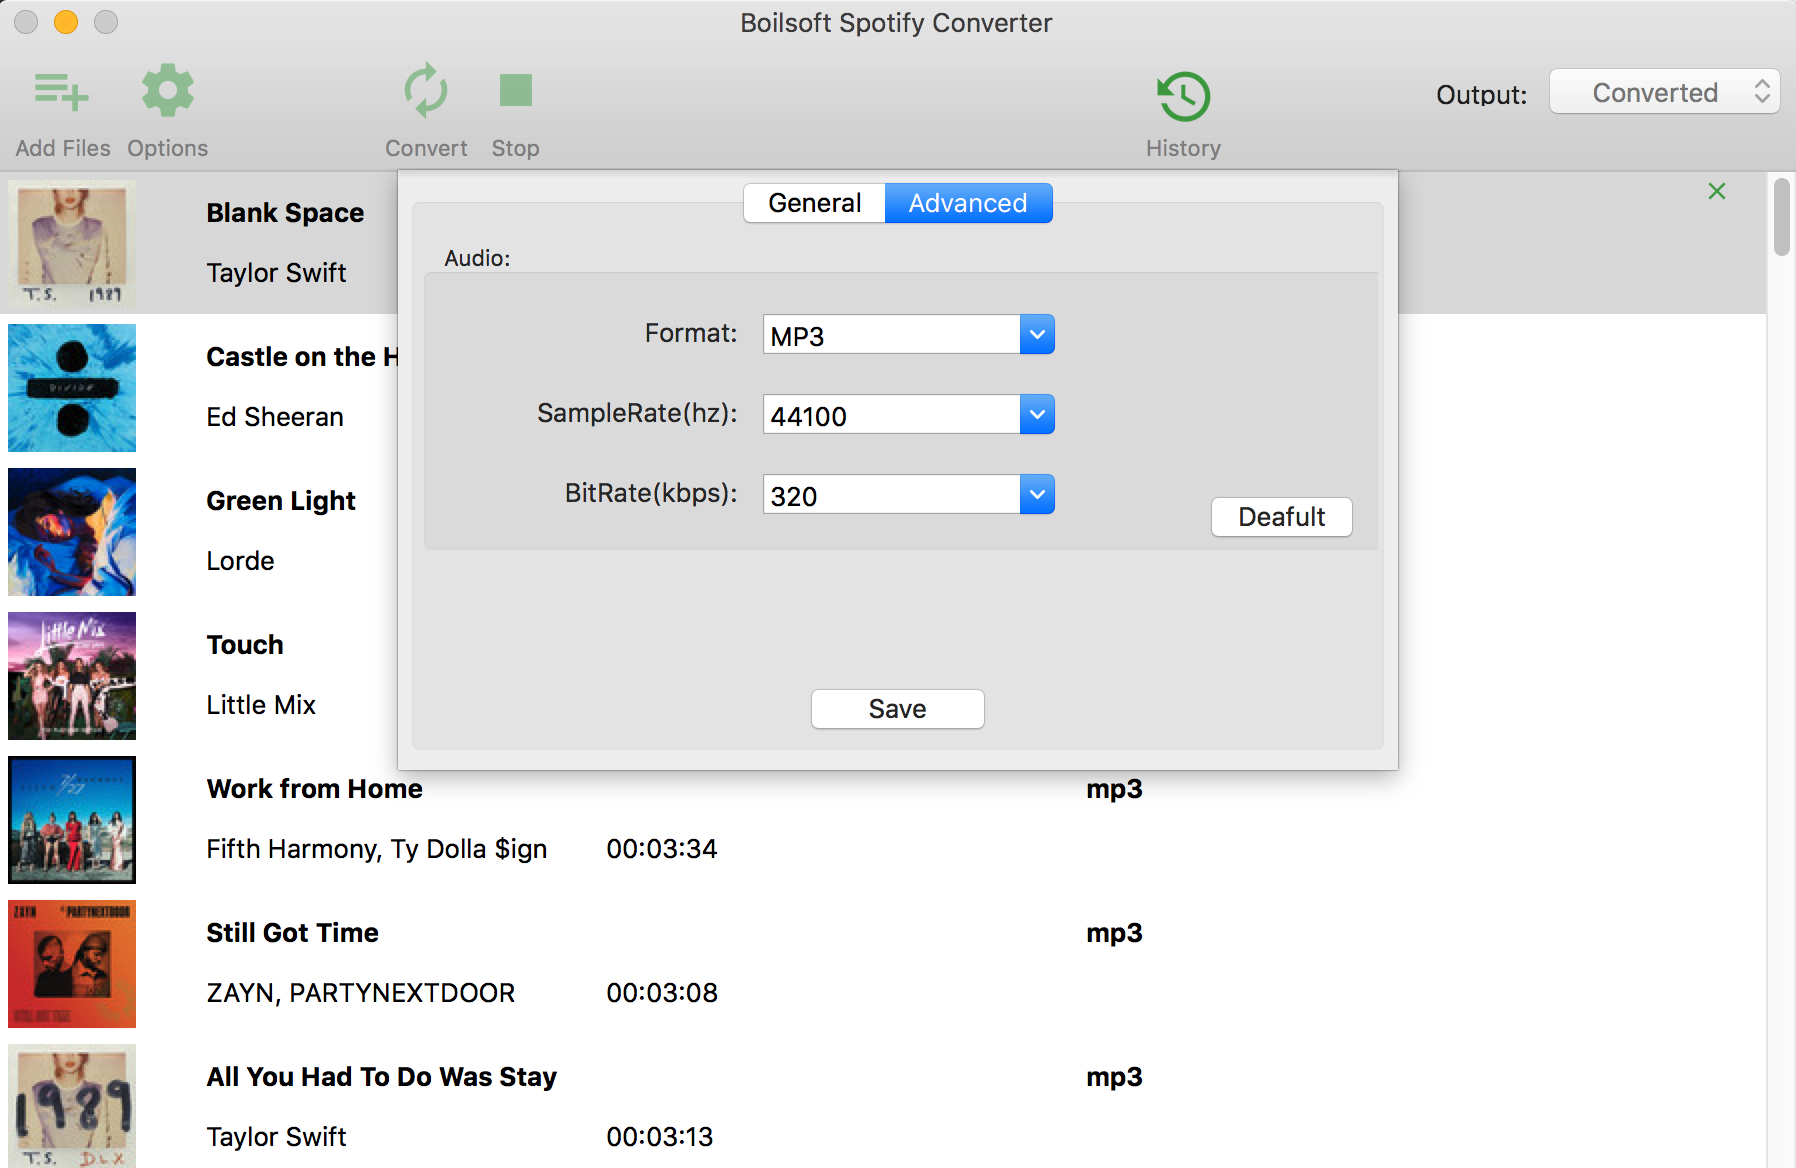 convert spotify to mp3